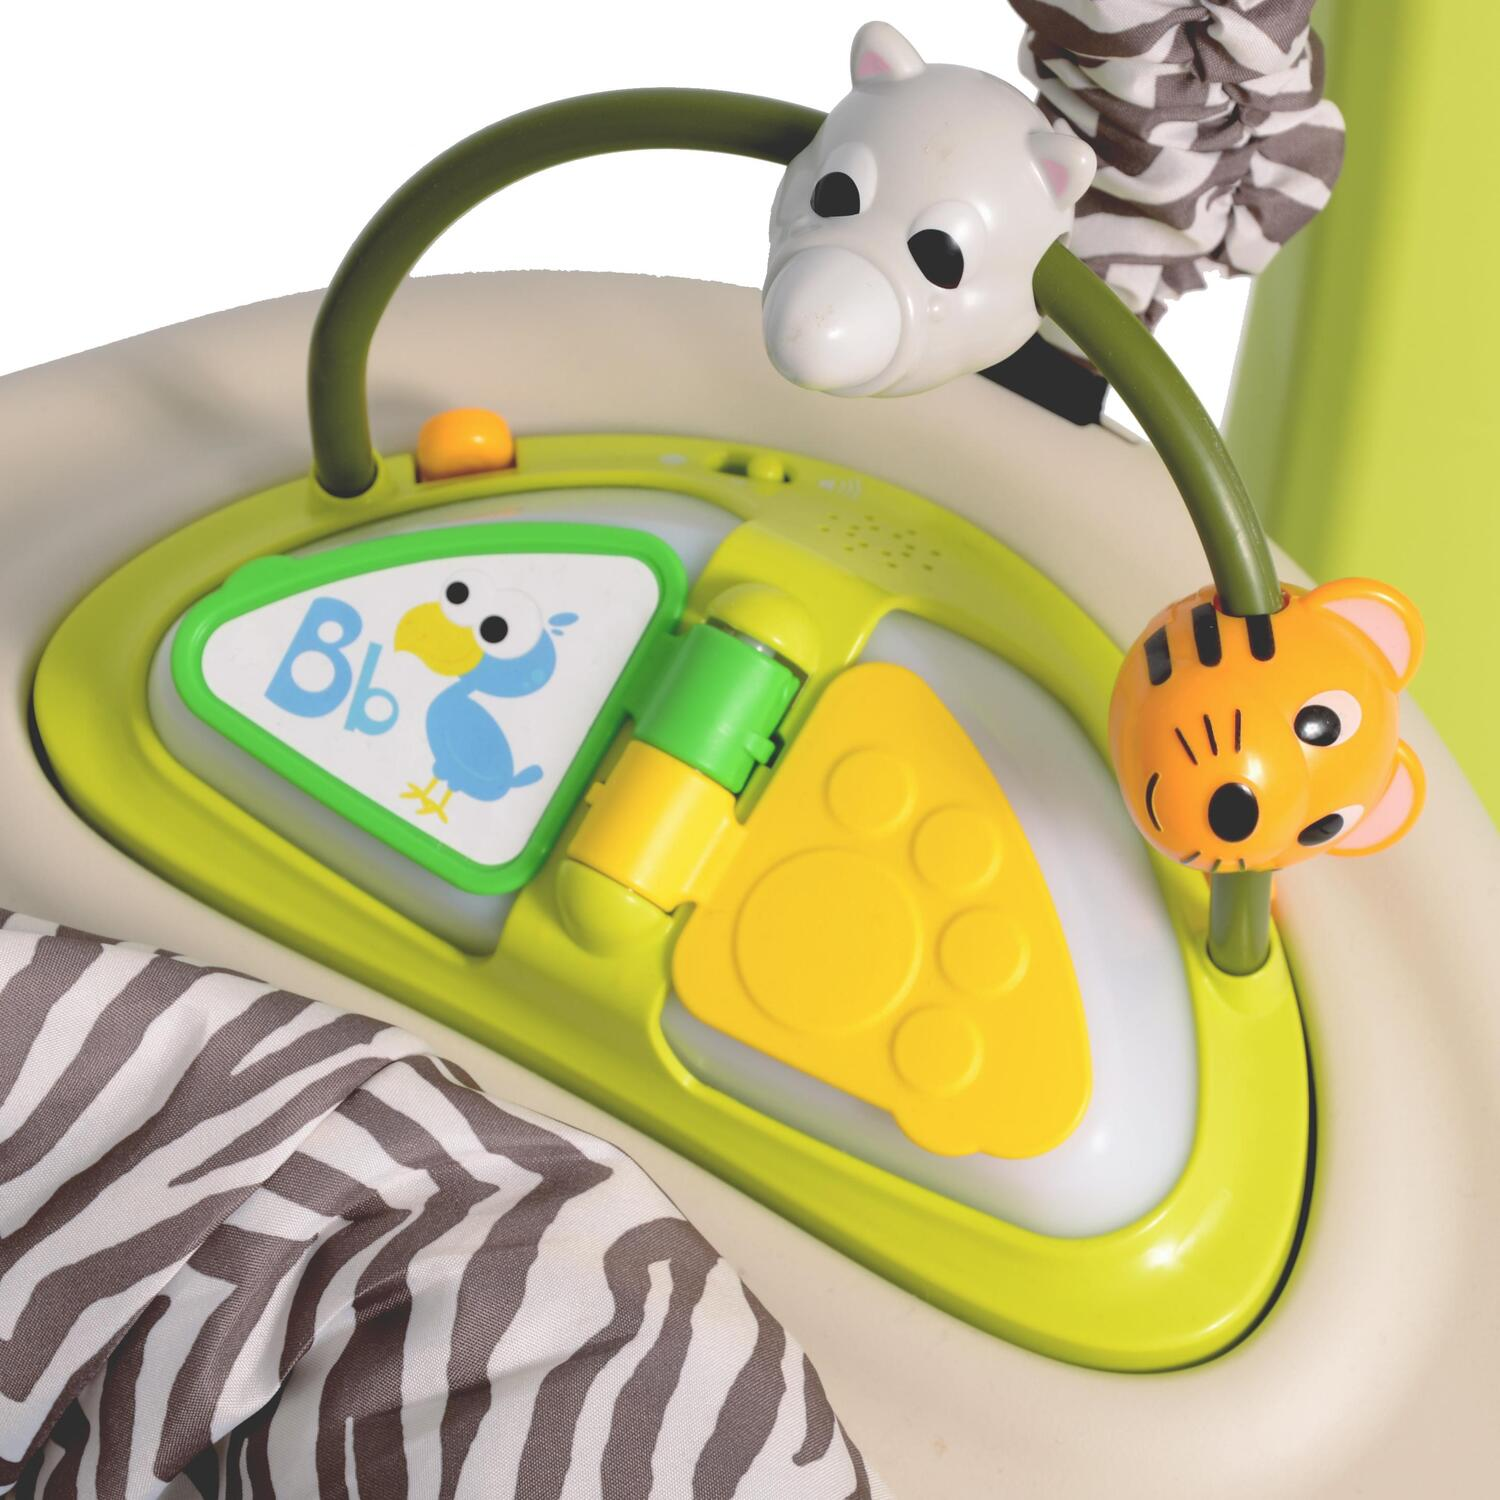 EVENFLO EXERSAUCER JUMP AND LEARN JUNGLE QUEST - YouTube